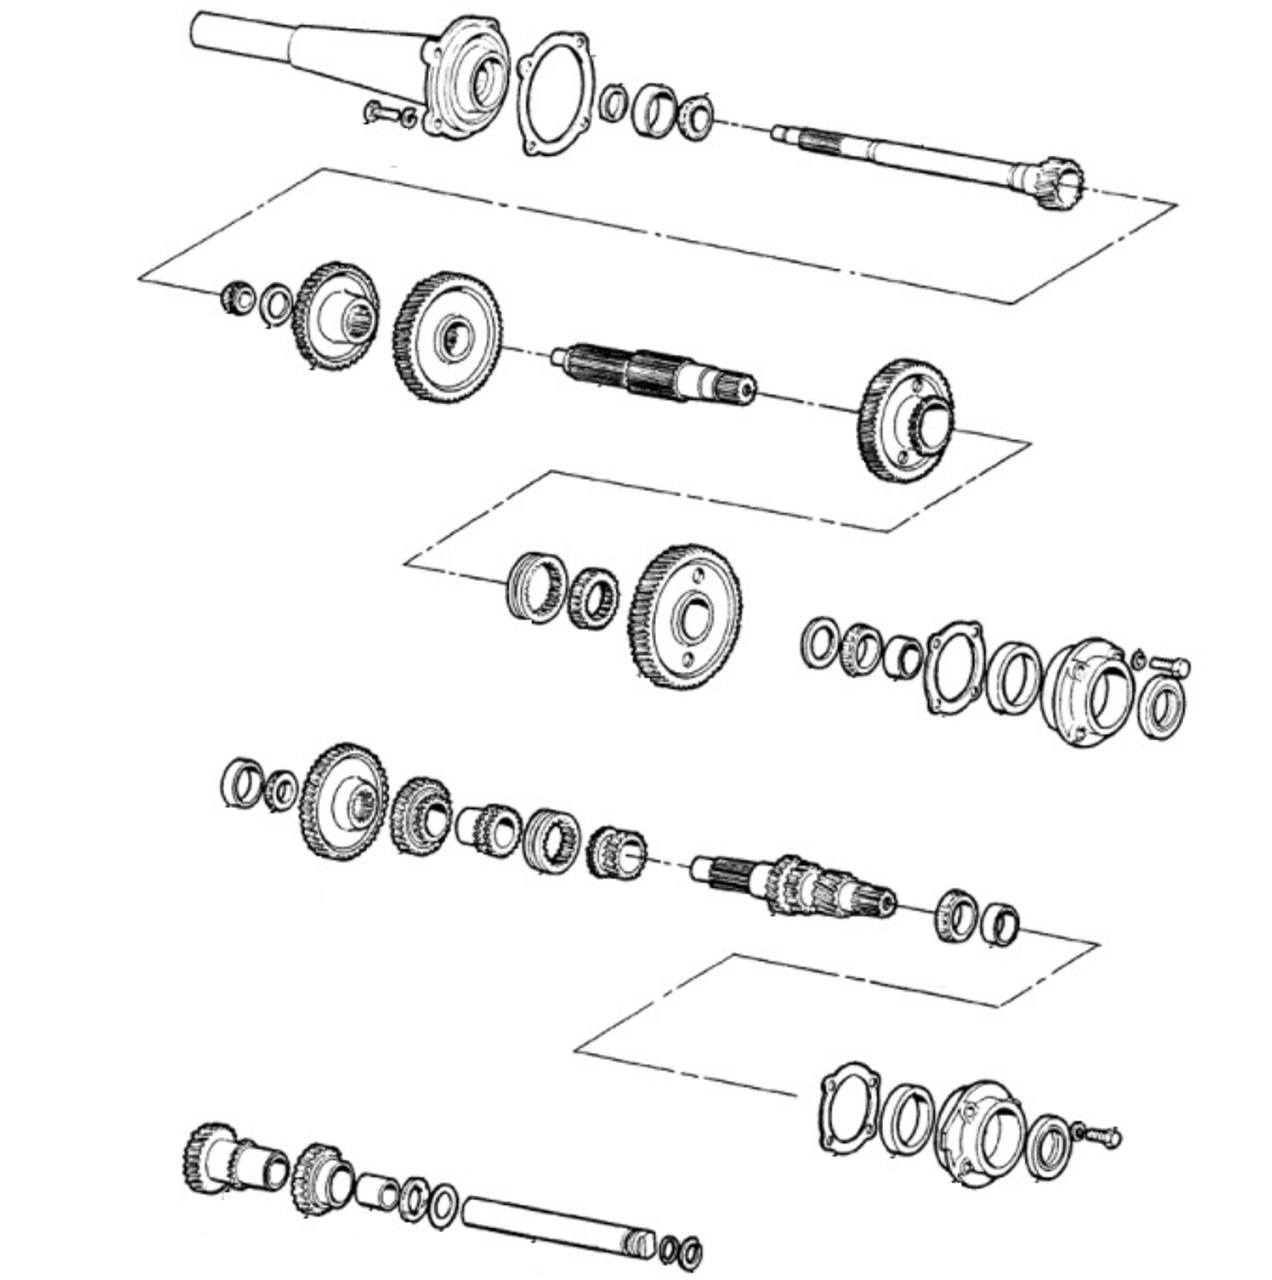 ford tractor transmission parts gears, shafts, shift top Ford 5000 Tractor Specs